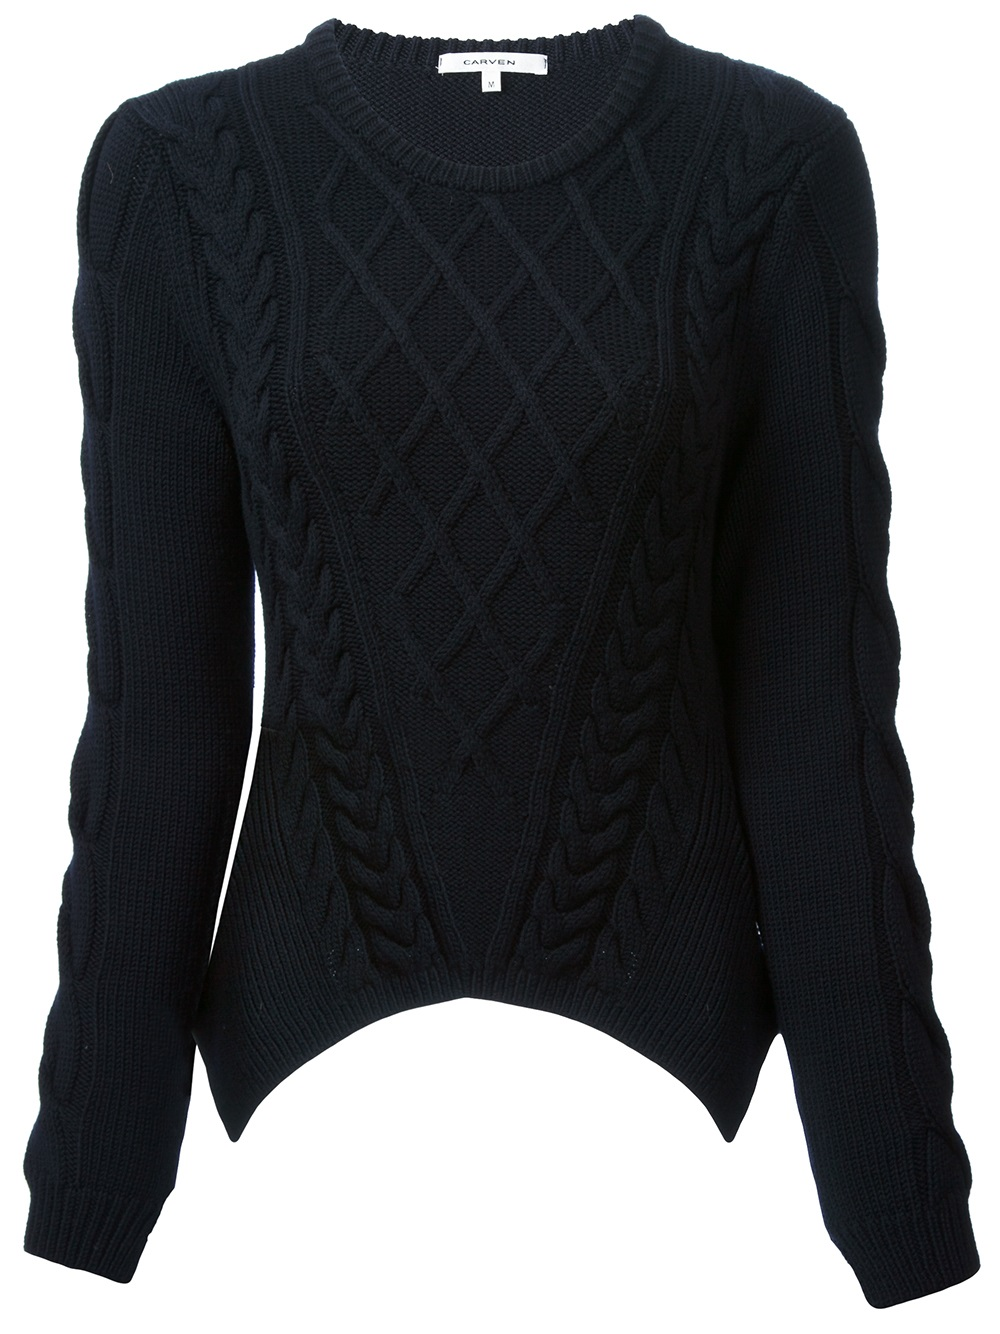 Carven Cable Knit Sweater in Black | Lyst